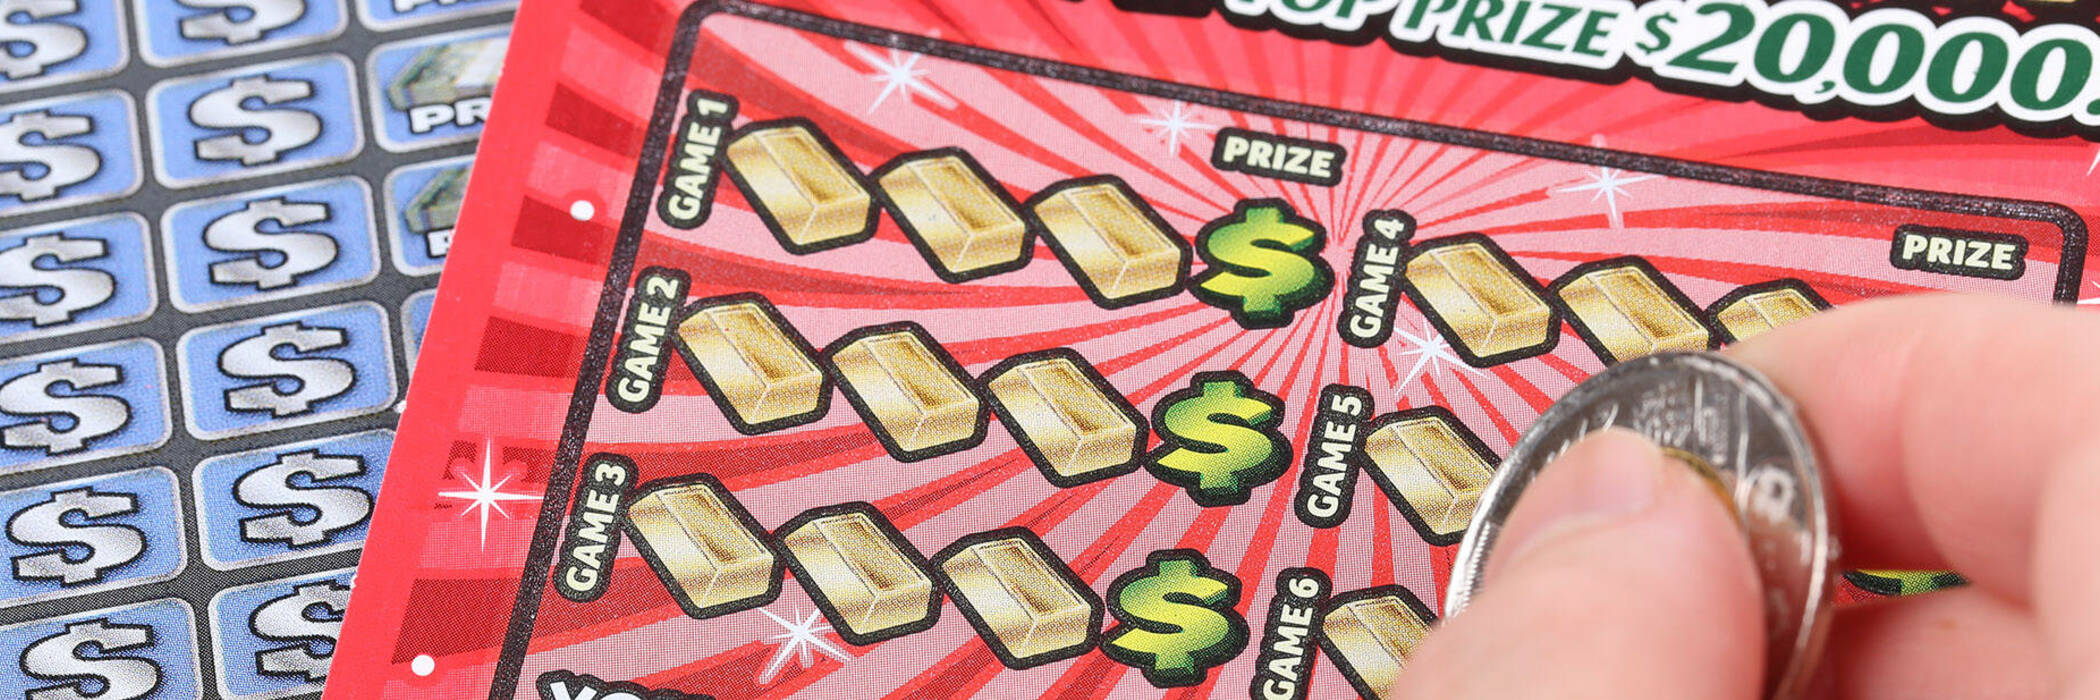 scratchie lottery ticket